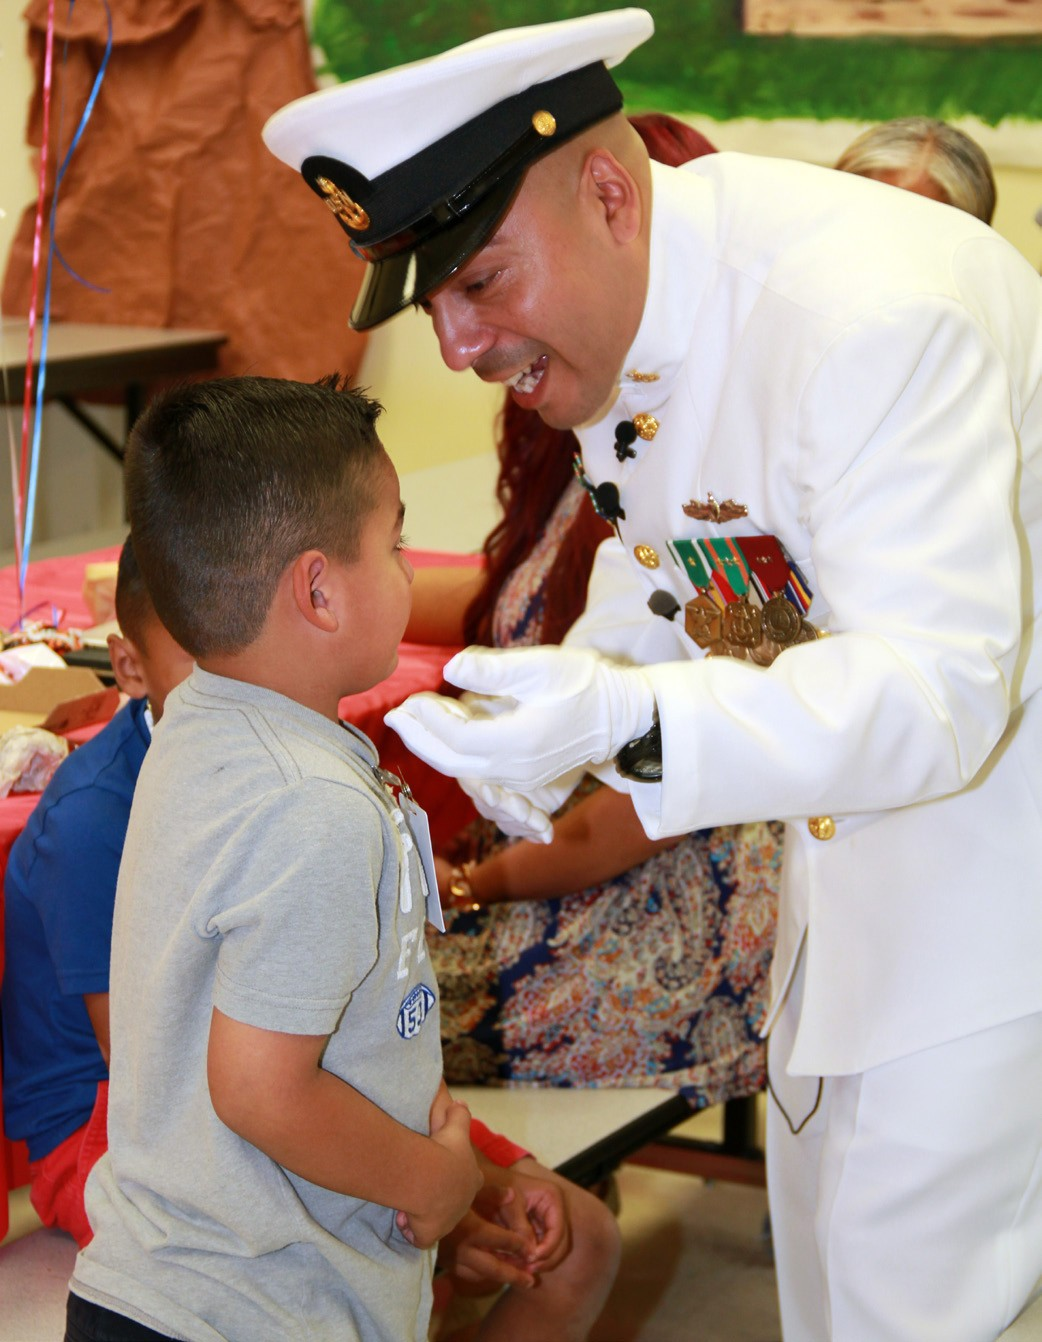 Brothers Vinny and Adyn Macias greet their father, Senior Chief Petty Officer Vincent Macias at his homecoming Tuesday during lunch.